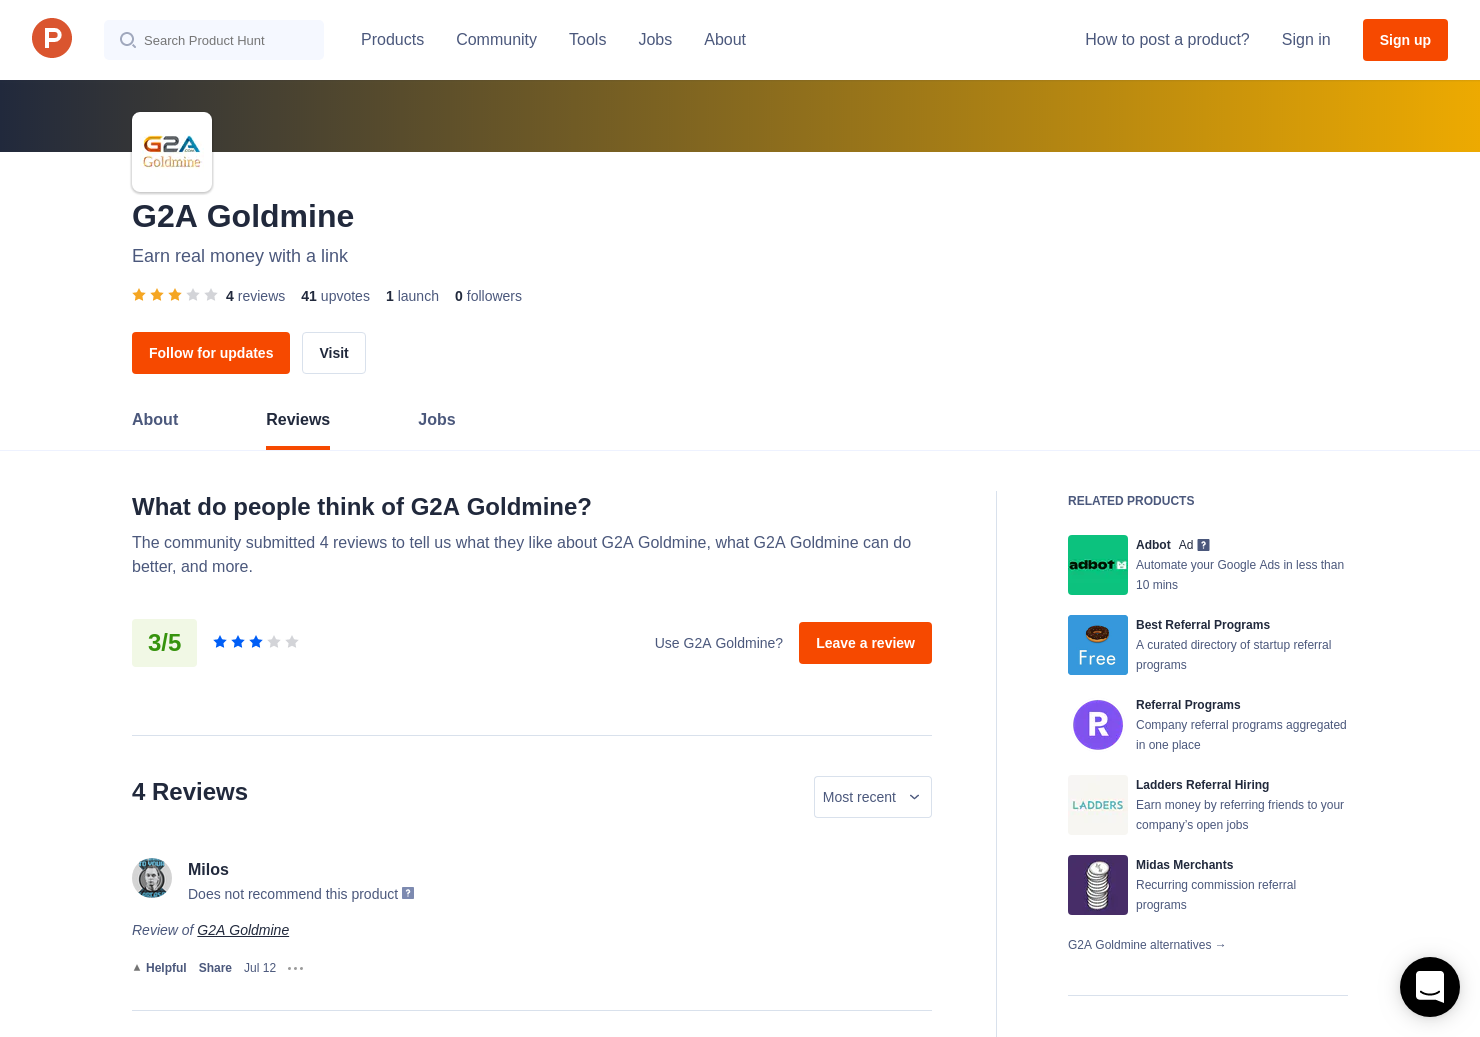 4 G2A Goldmine Reviews - Pros, Cons and Rating   Product Hunt